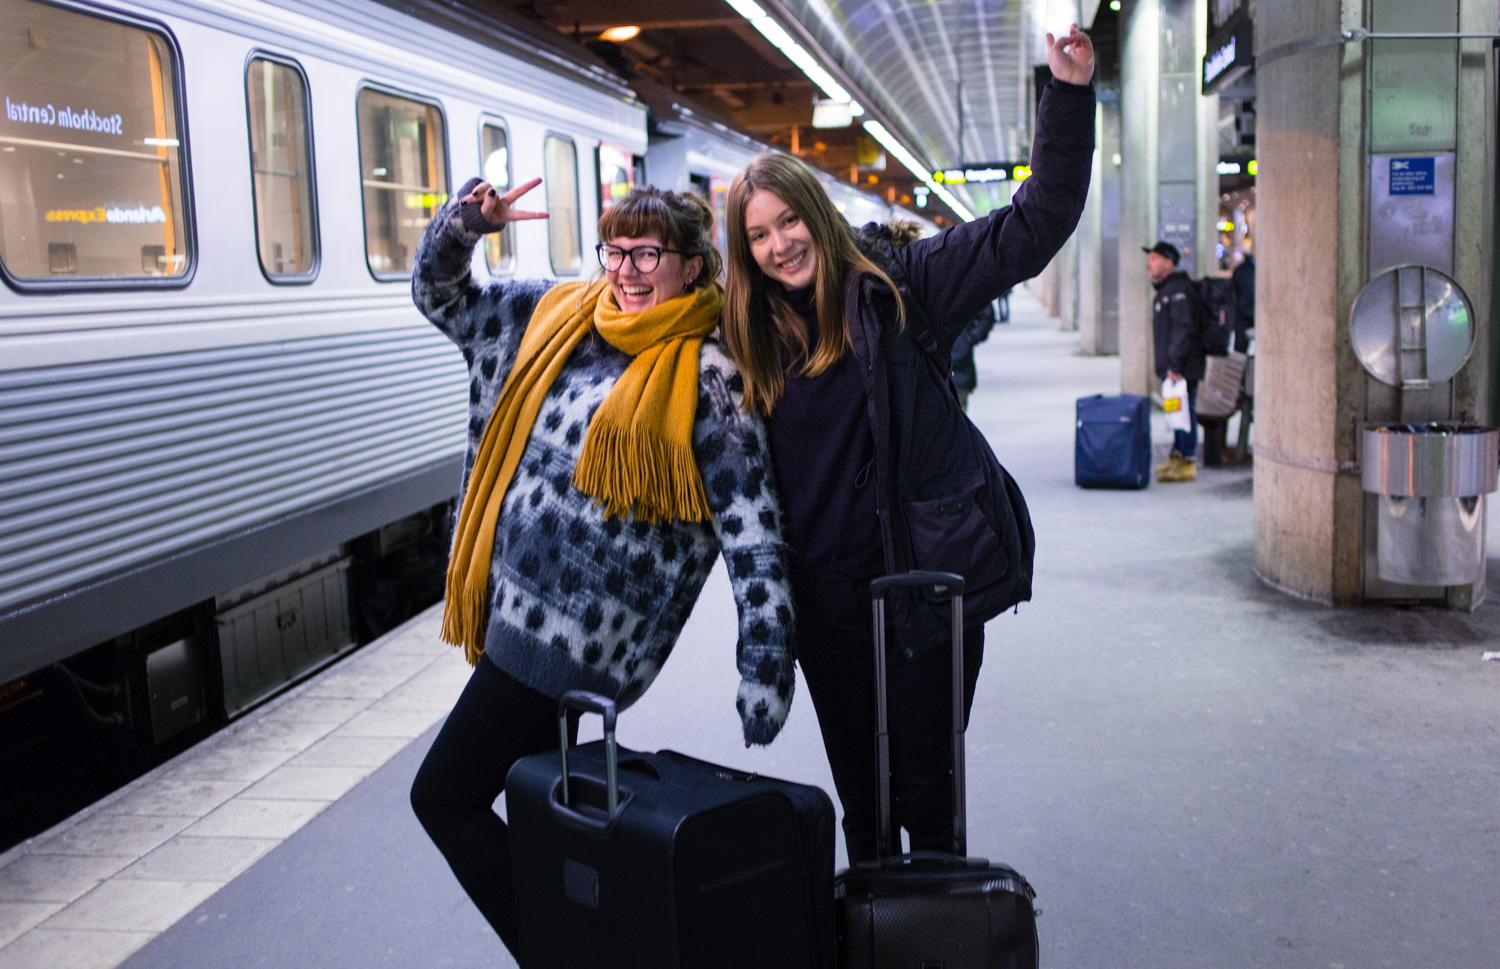 Up and coming: Arctic Circle Train och Lappland